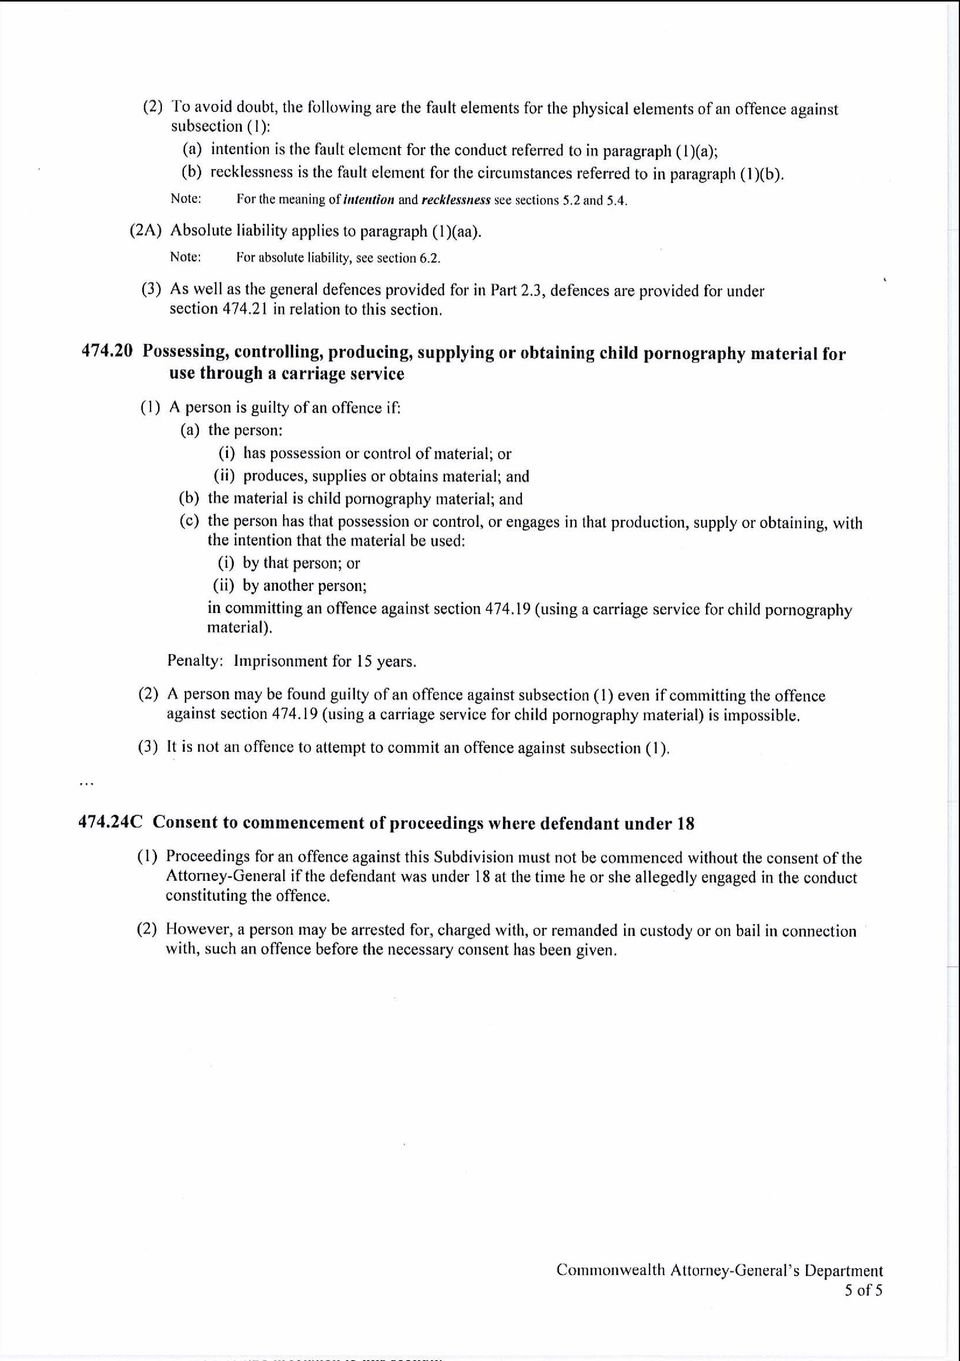 (2A) Absolute liability applies to paragraph (I)(aa). Note: For nbsolute linbility, see section 6.2. (3) As well as the general defences provided for in Part 2.